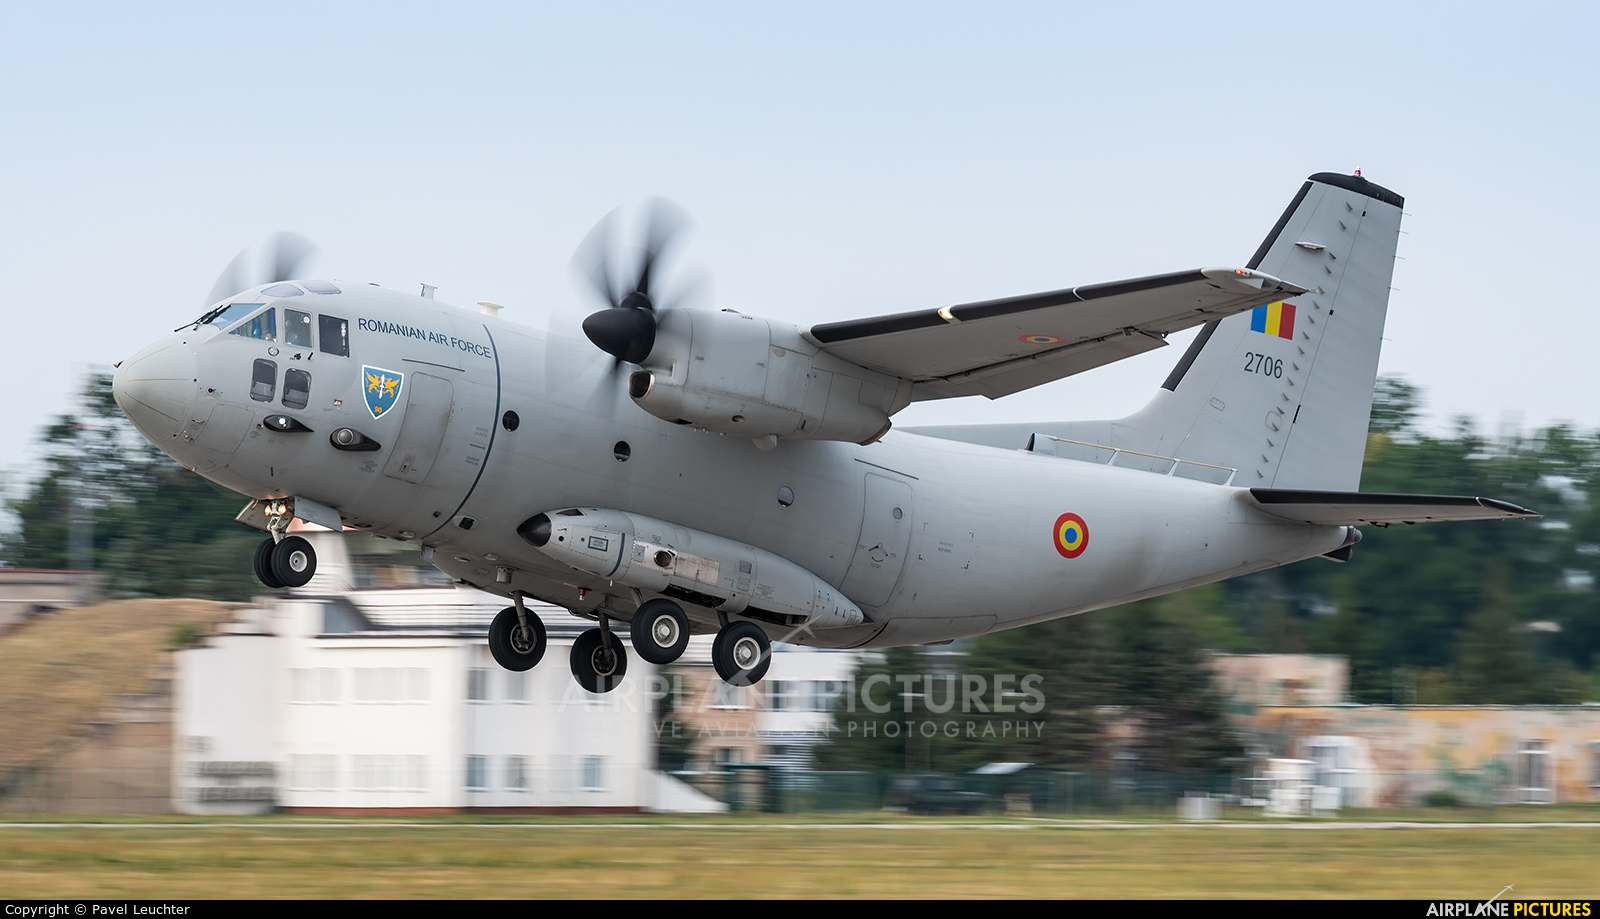 Romania - Air Force 2706 aircraft at Pardubice